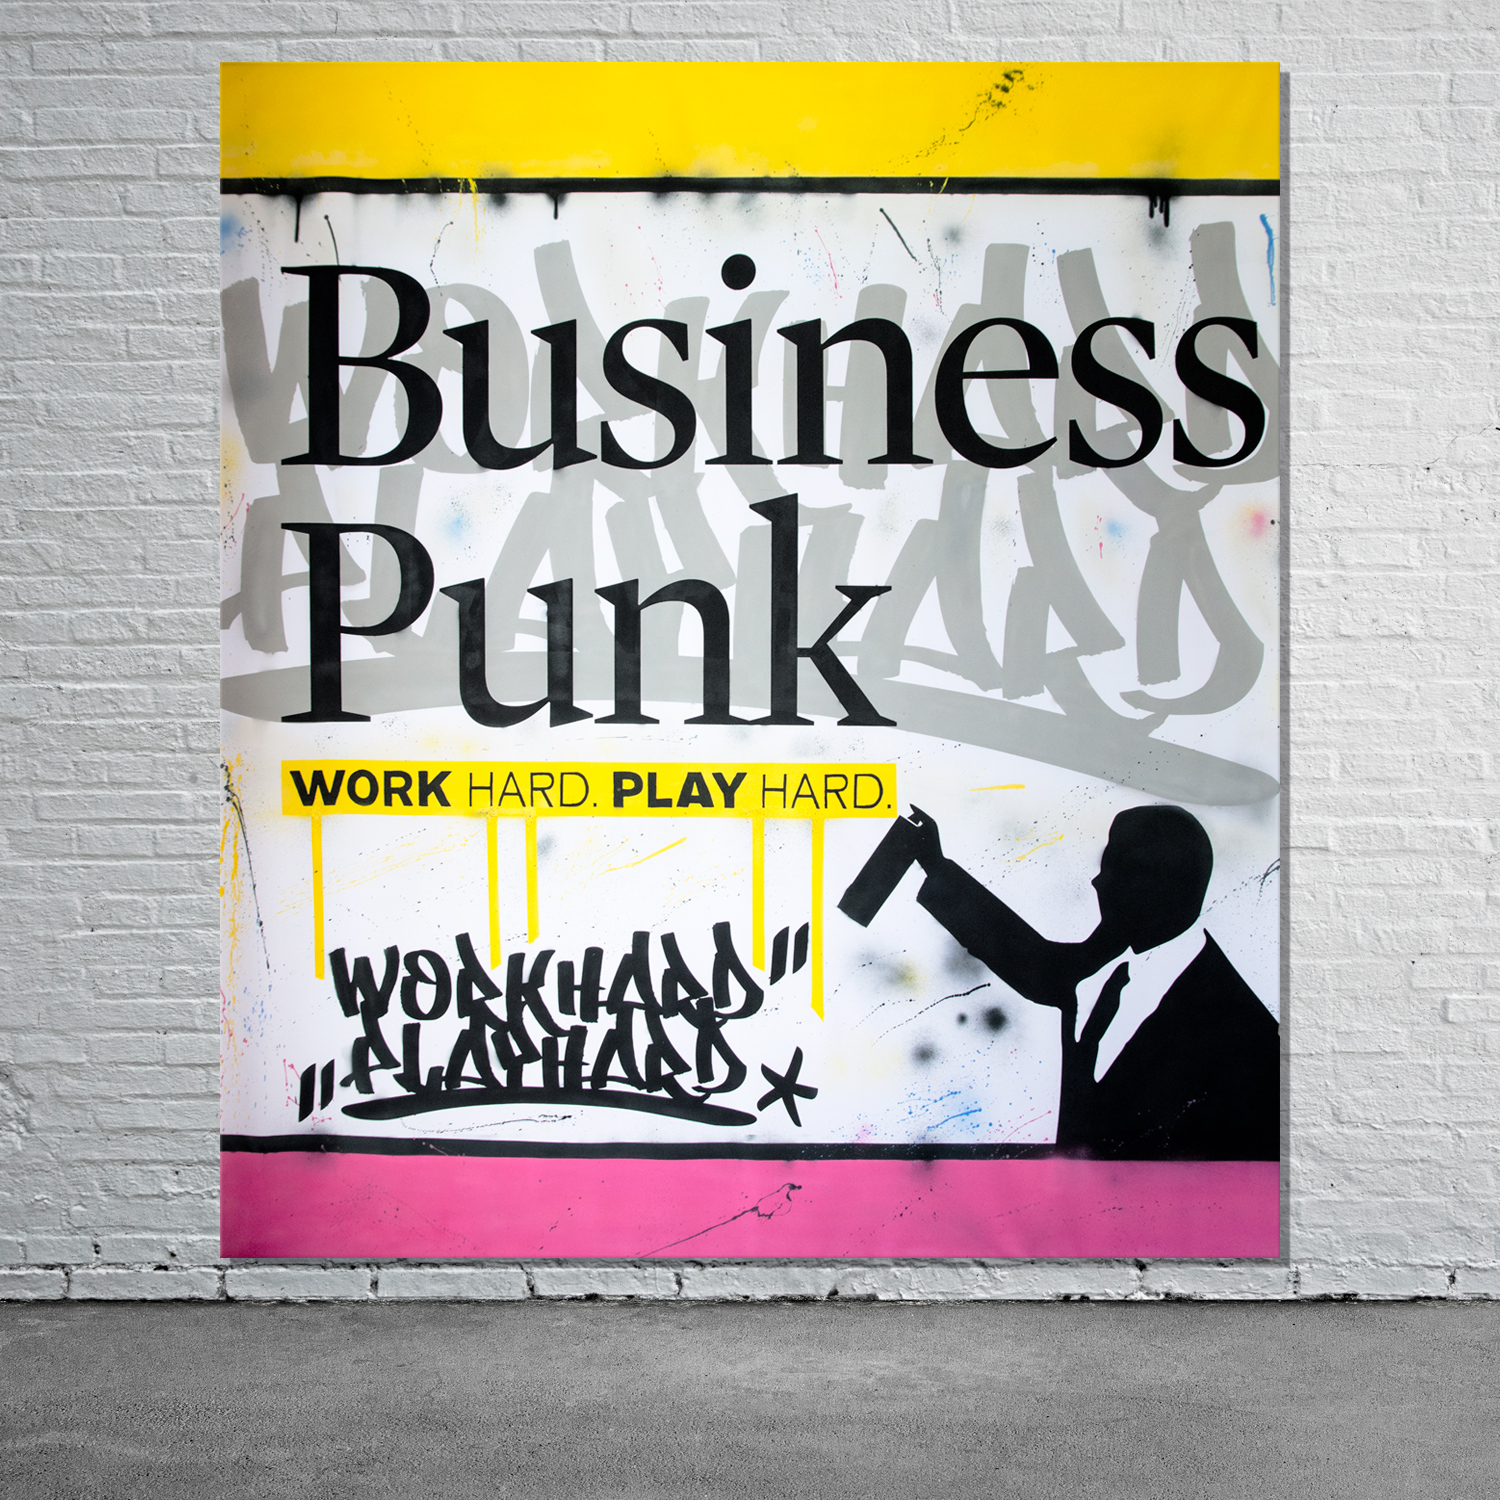 Streetart Leinwand für Business Punk Magazin